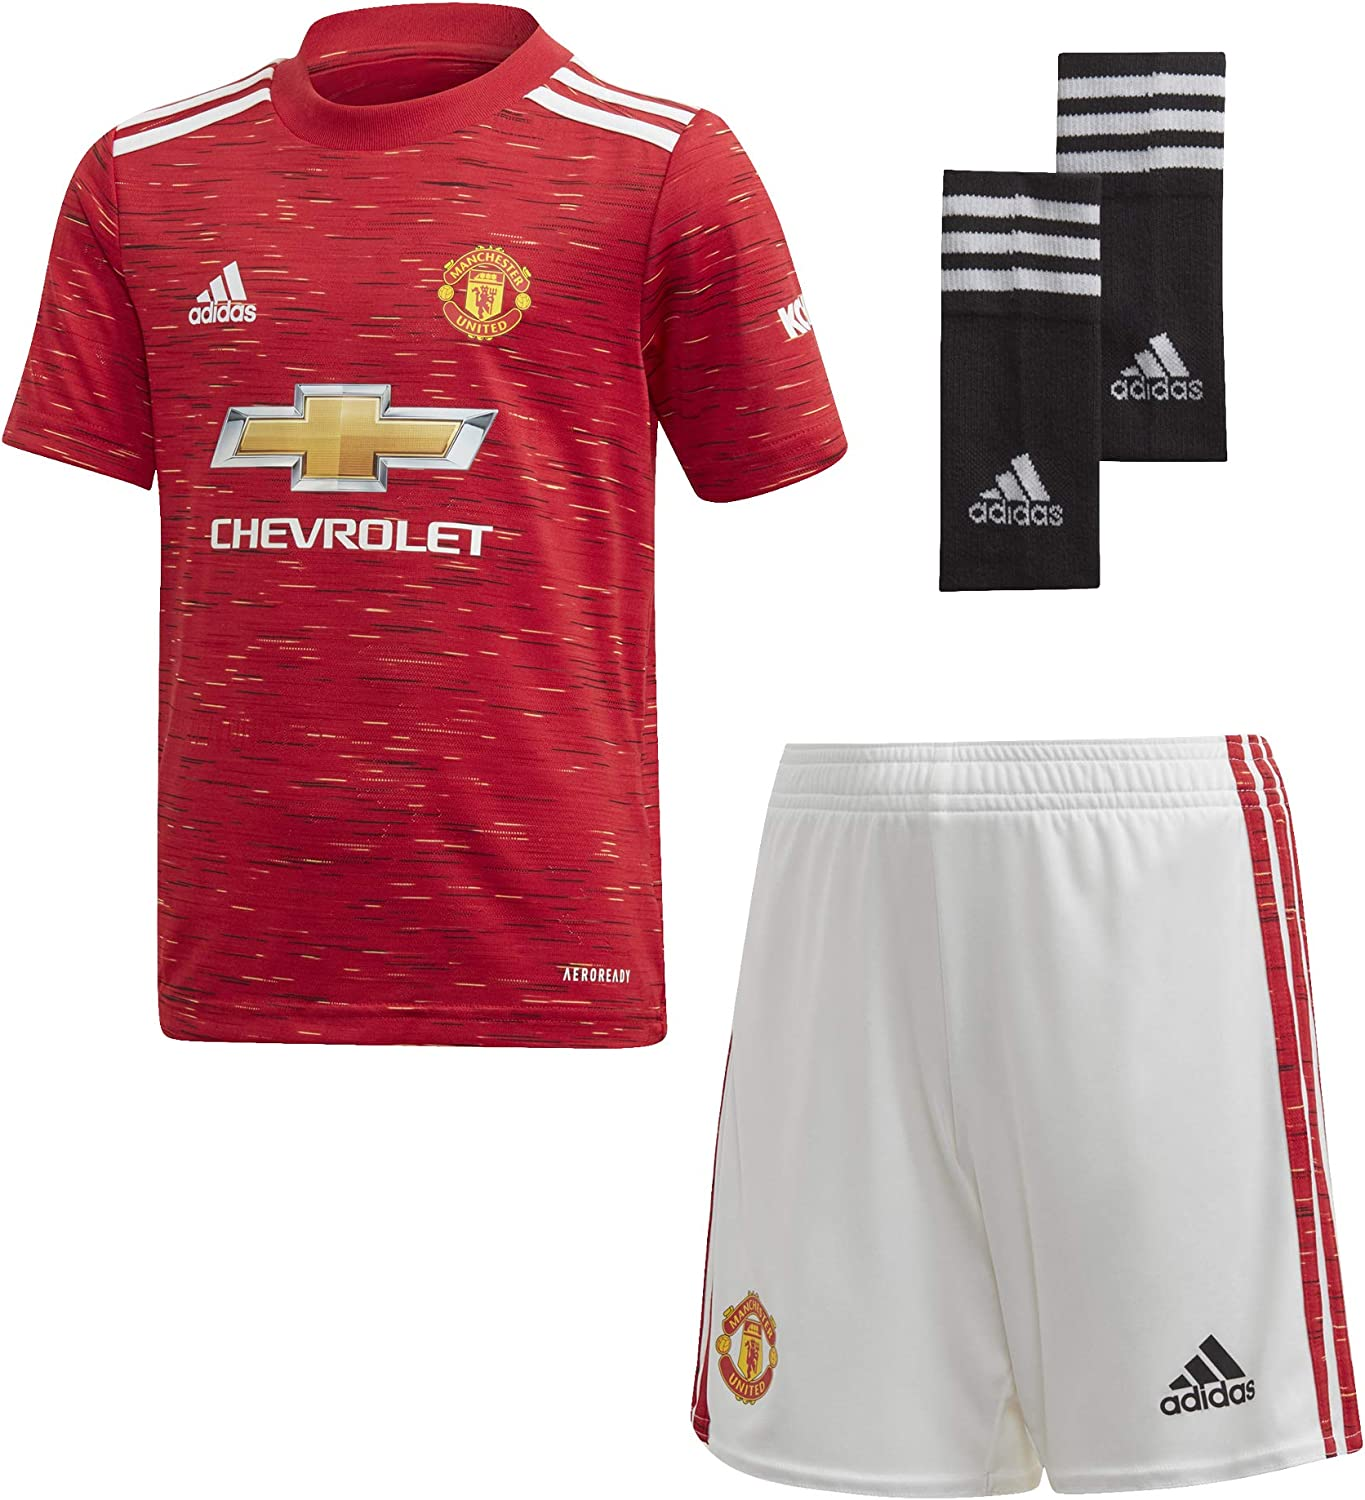 Amazon Com Adidas Manchester United Kids Home Kit 2020 21 4 5 Years Sports Outdoors